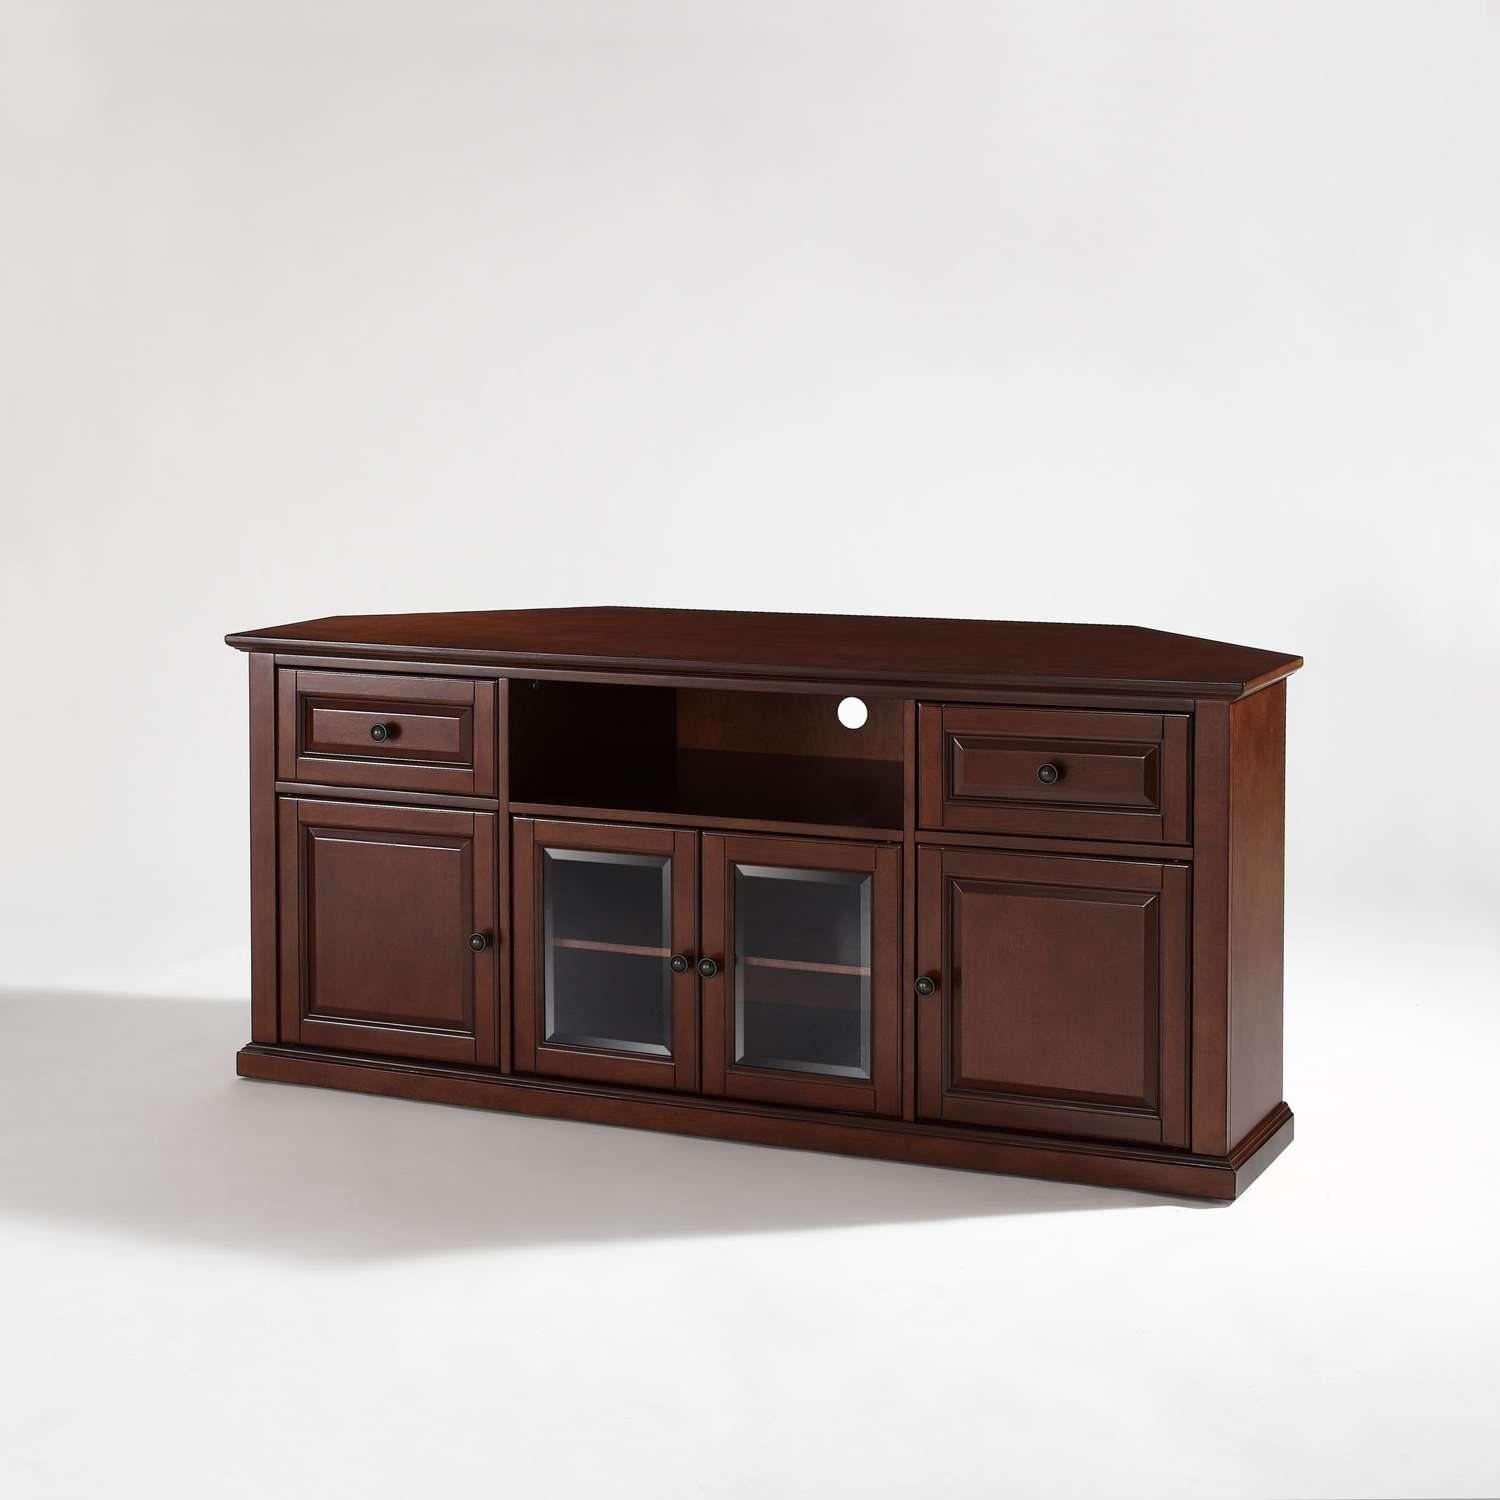 60 Inch Corner Tv Stand In Vintage Mahogany Crosley Furniture With Regard To Walnut Corner Tv Stands (Gallery 8 of 15)